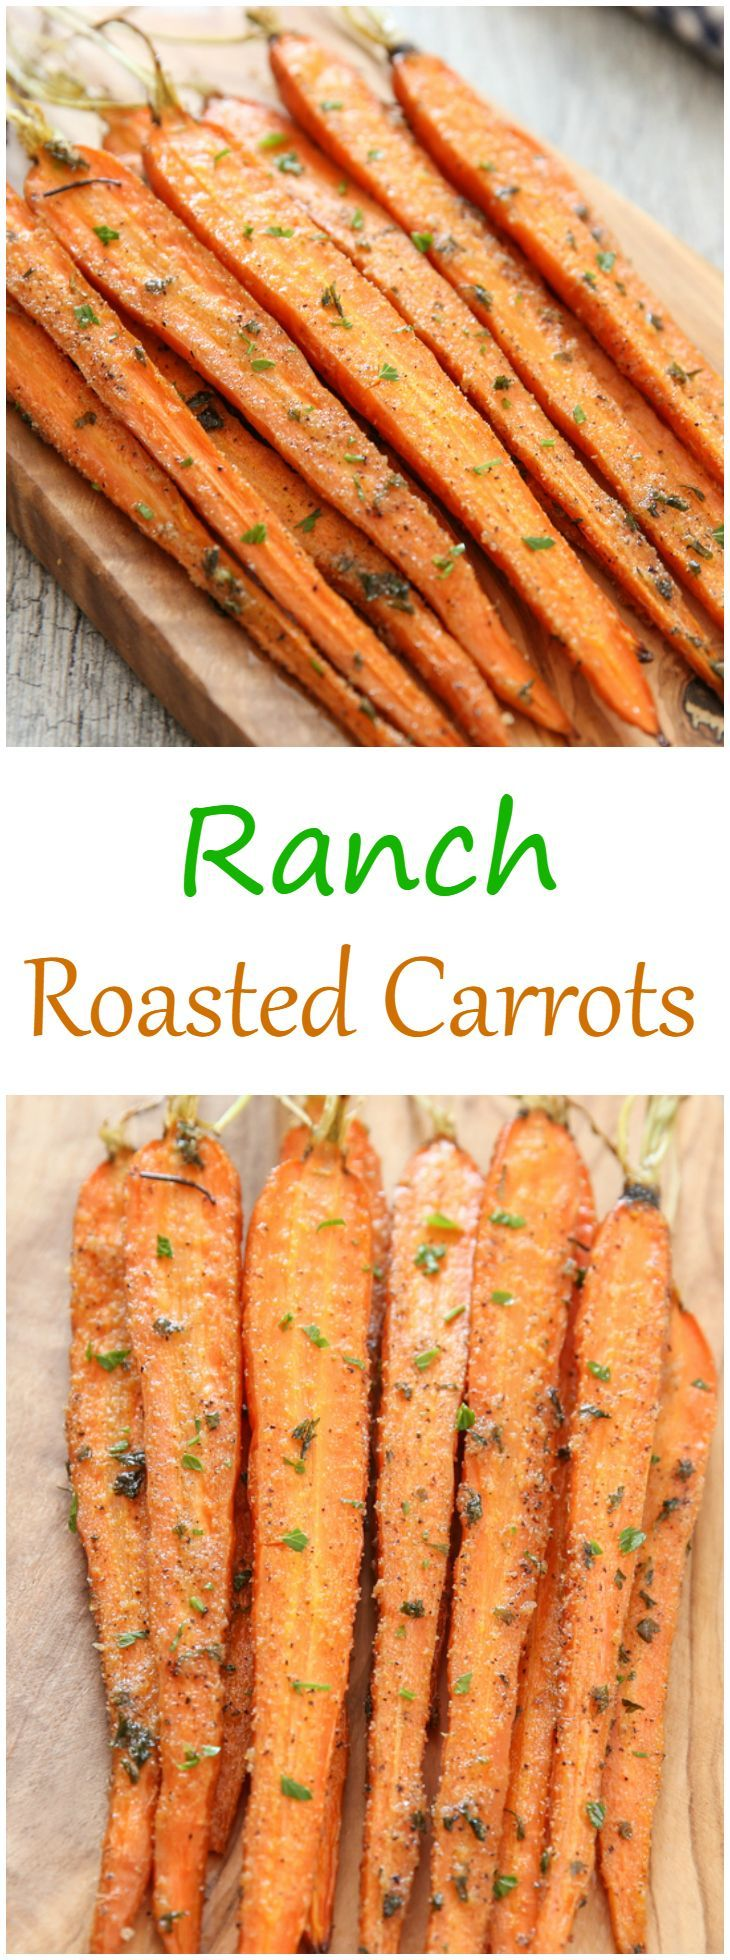 Ranch Roasted Carrots. An easy vegetable side dish made with a few basic pantry herbs and spices